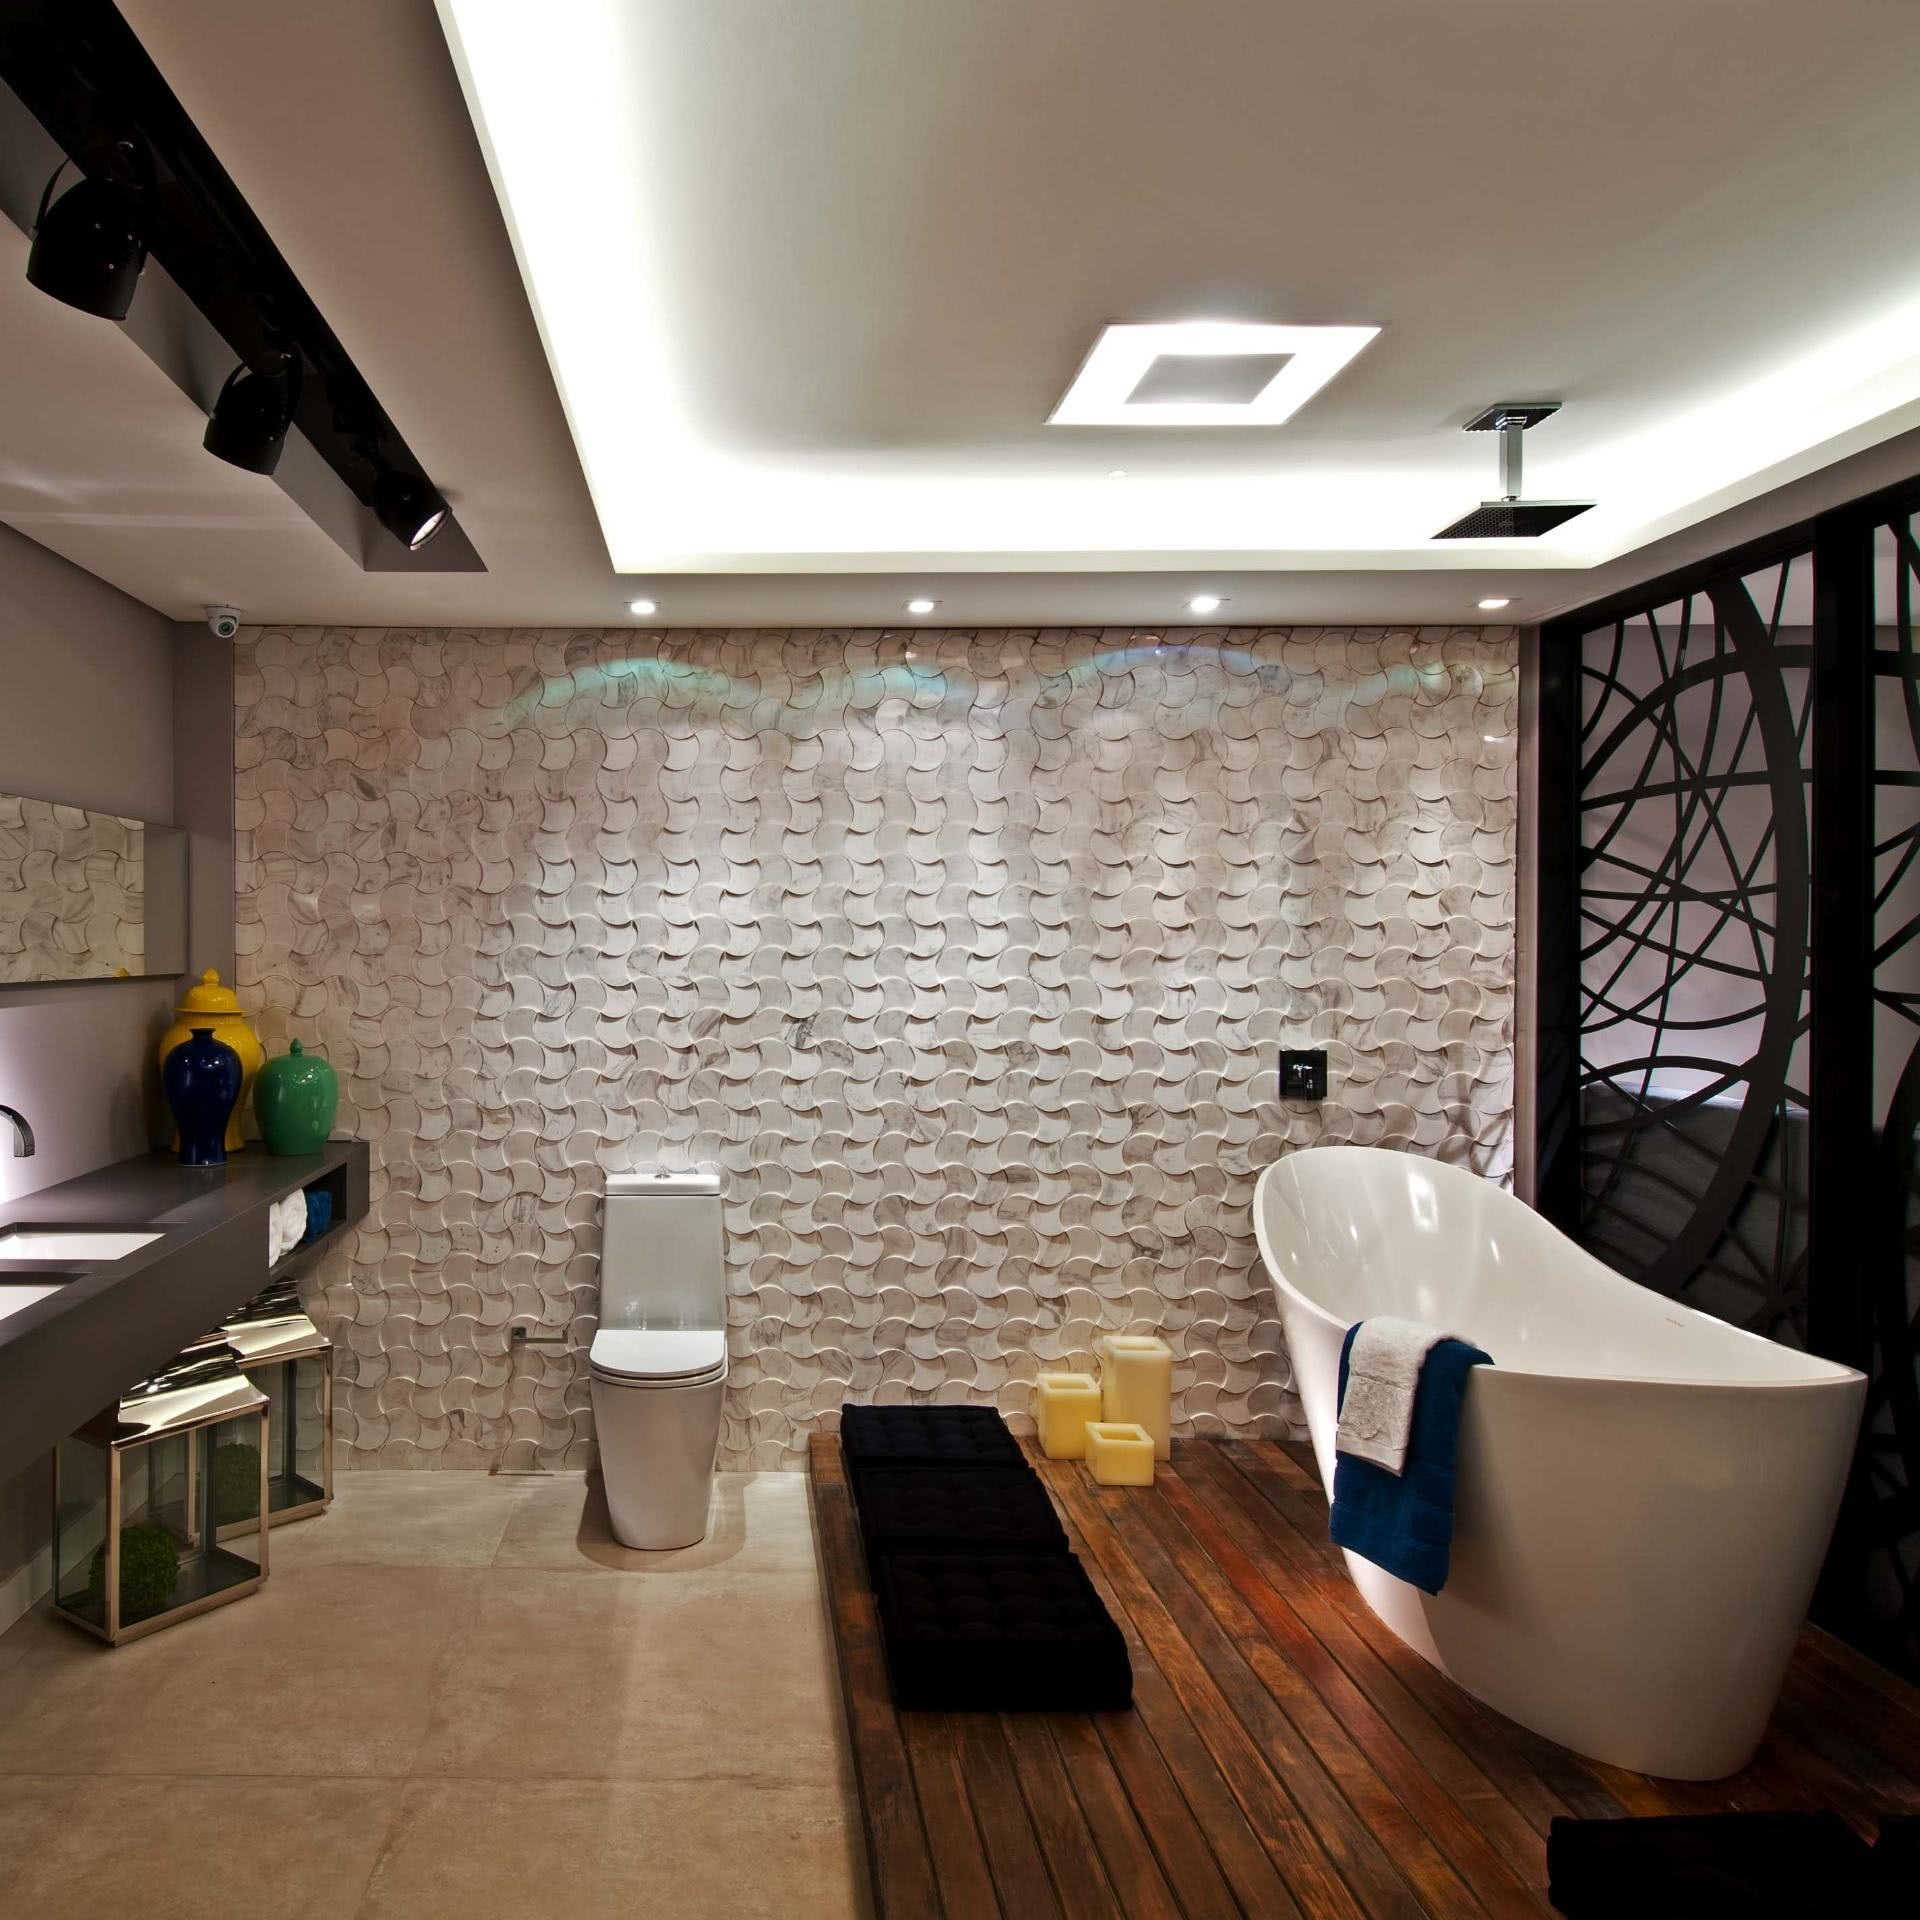 The floor with wooden deck follows the proposal of modern bathrooms very well